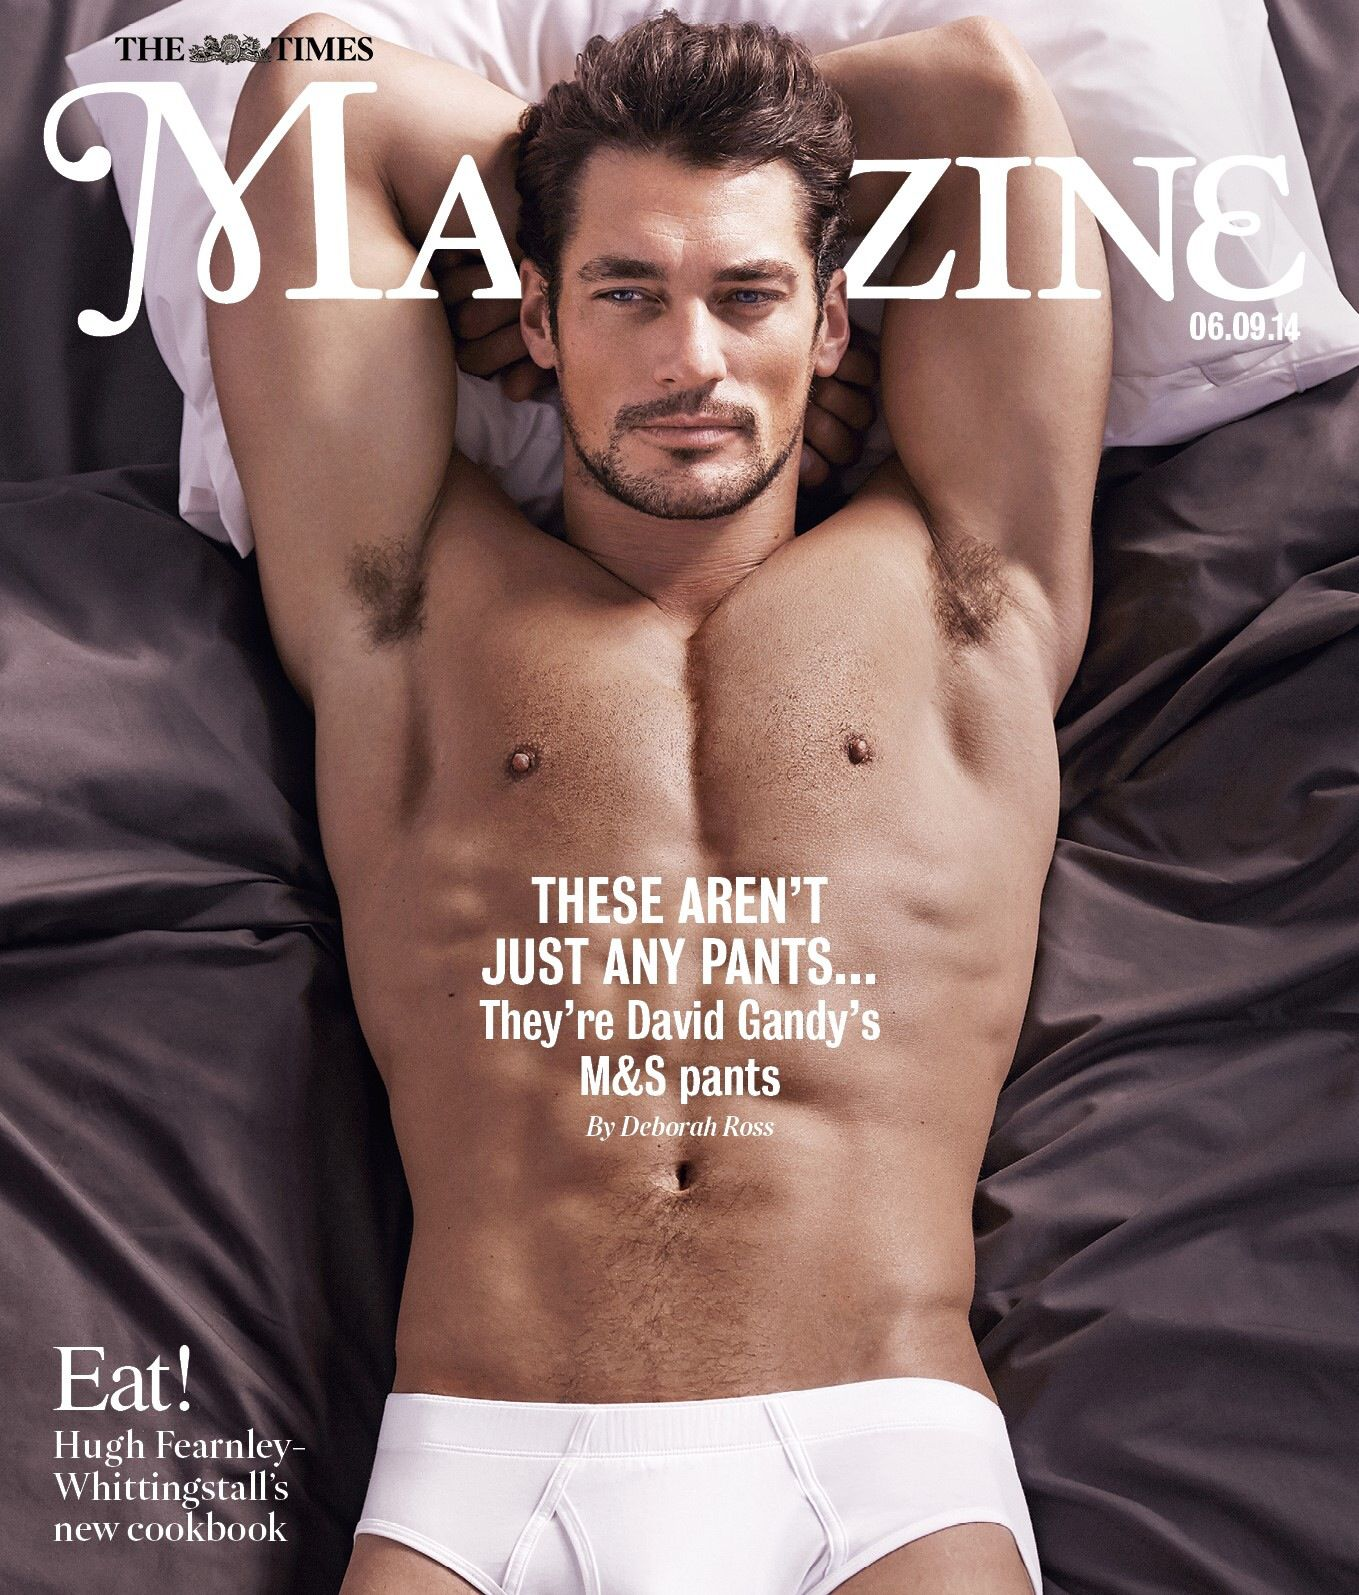 for the longest I thought this said Amazing instead of Magazine.  David Gandy eye candy